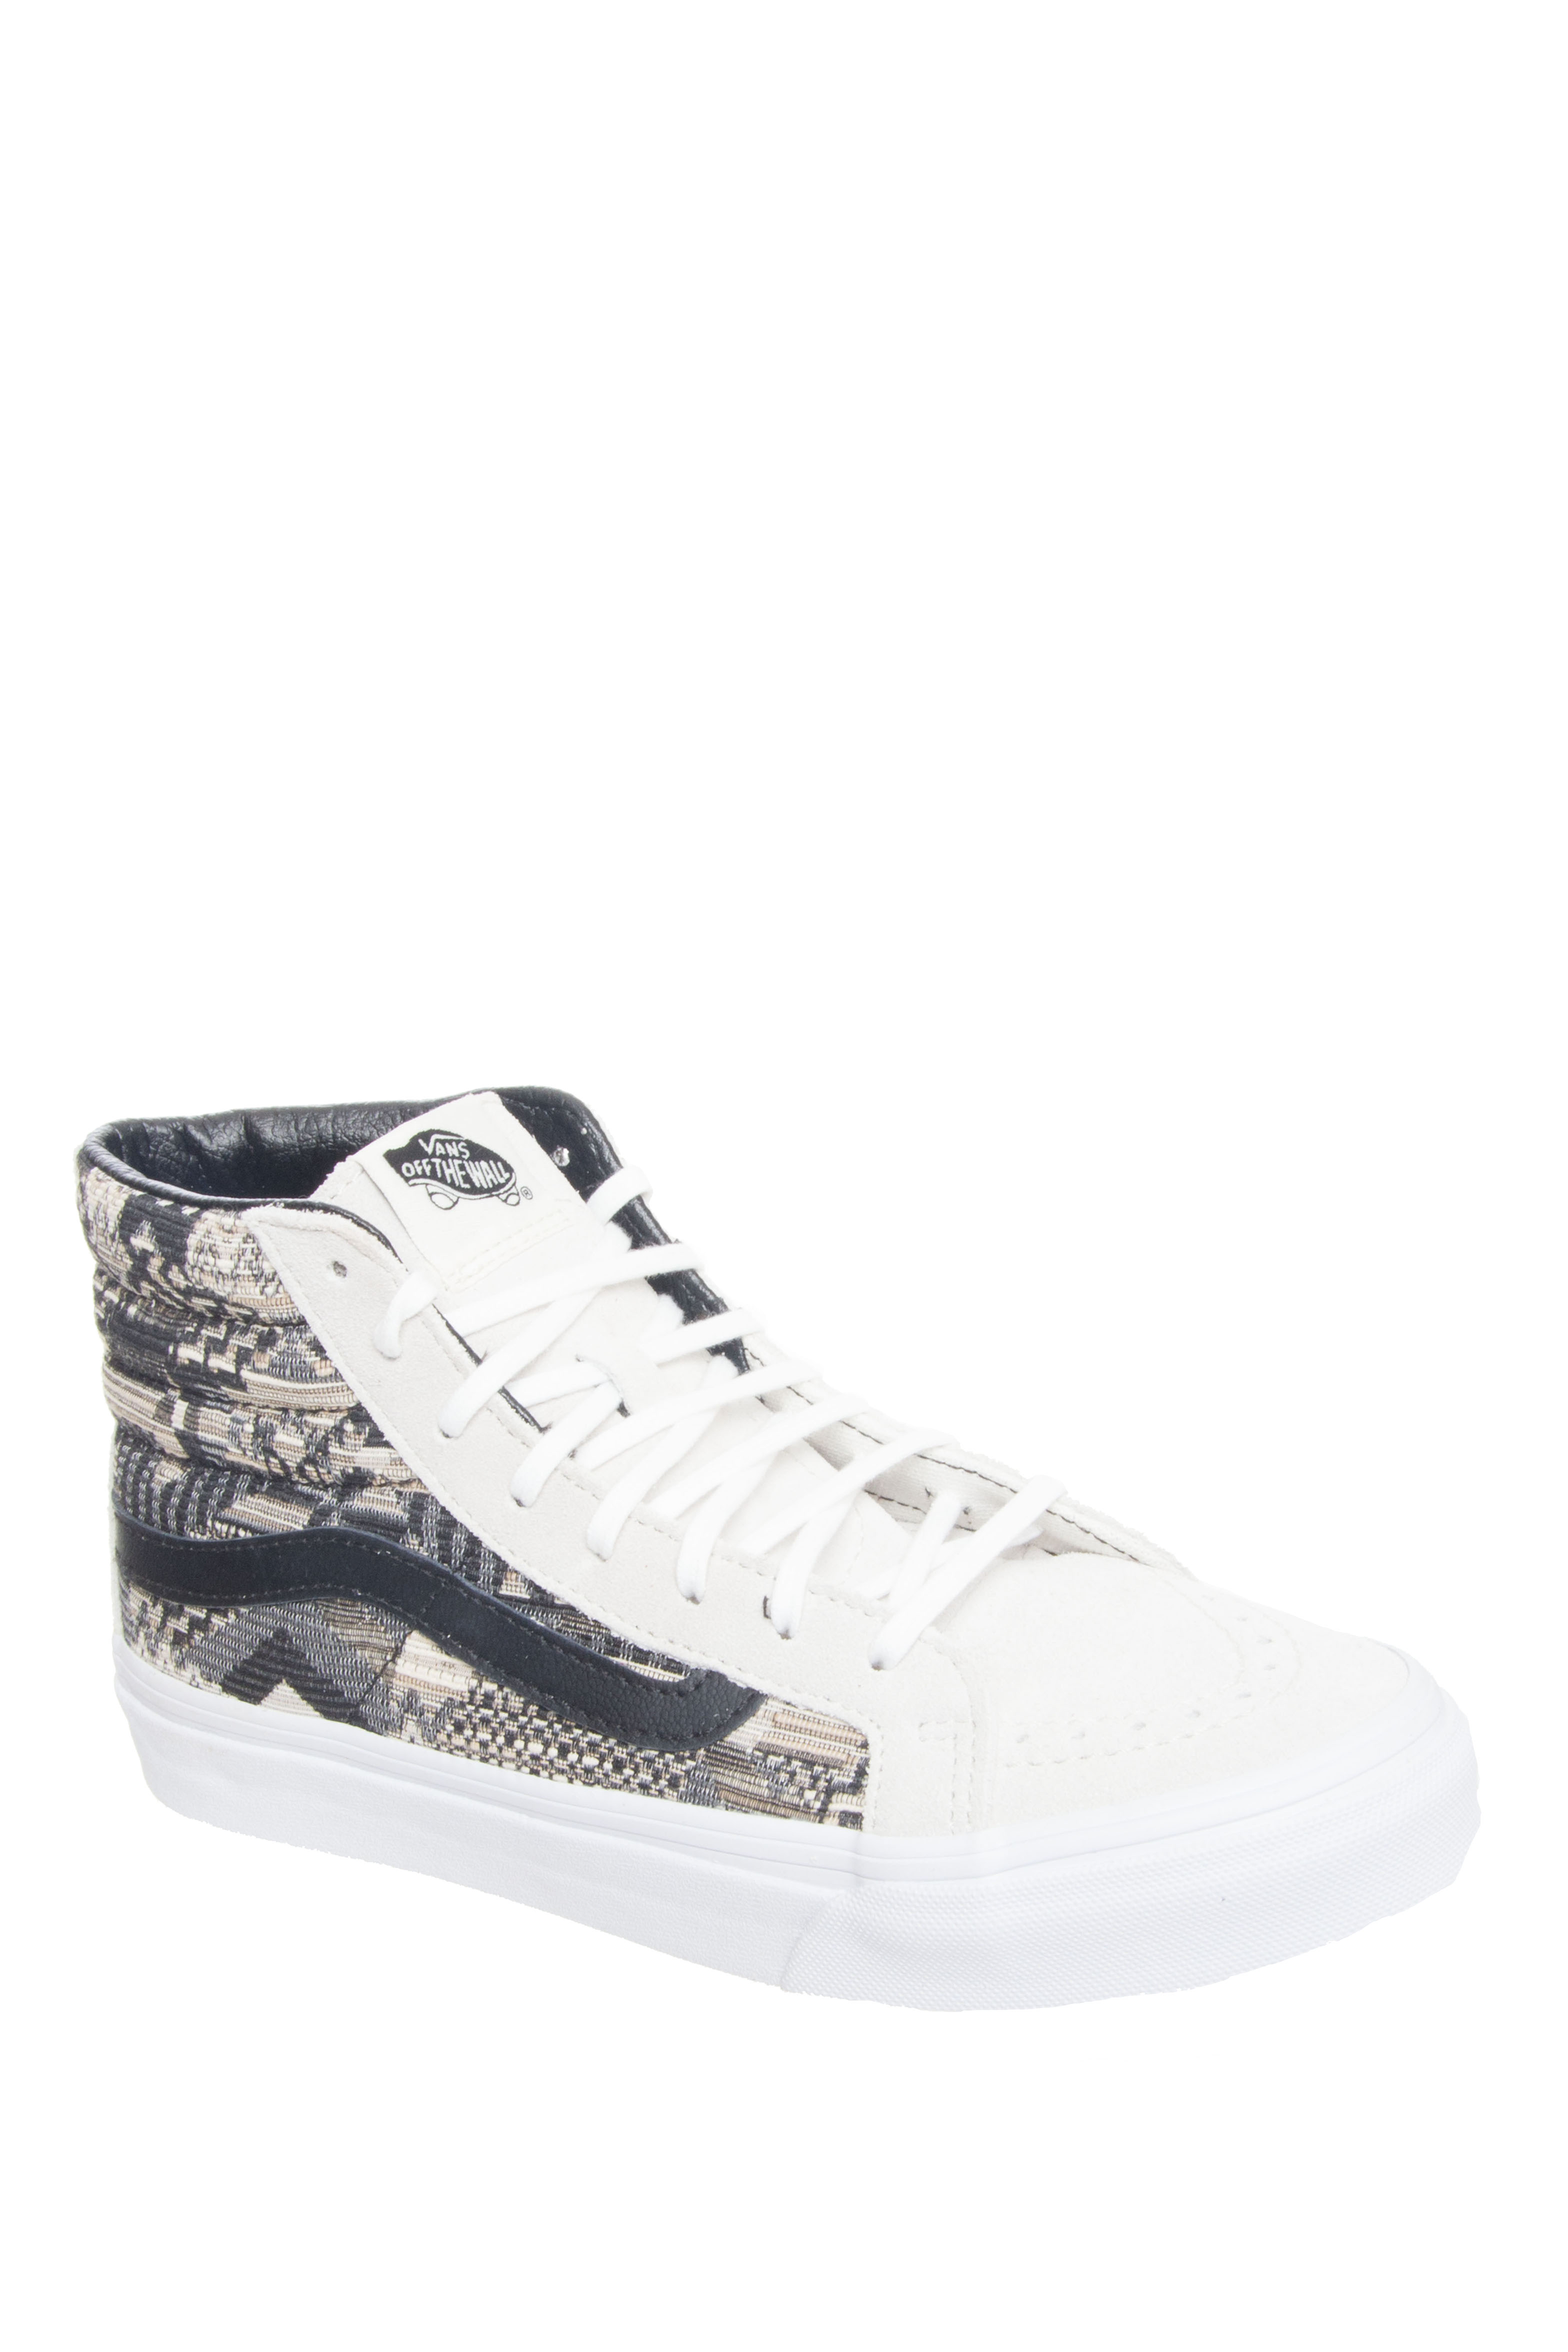 Vans Unisex SK8-Hi Slim Italian Weave Mid Top Sneakers - White / Black